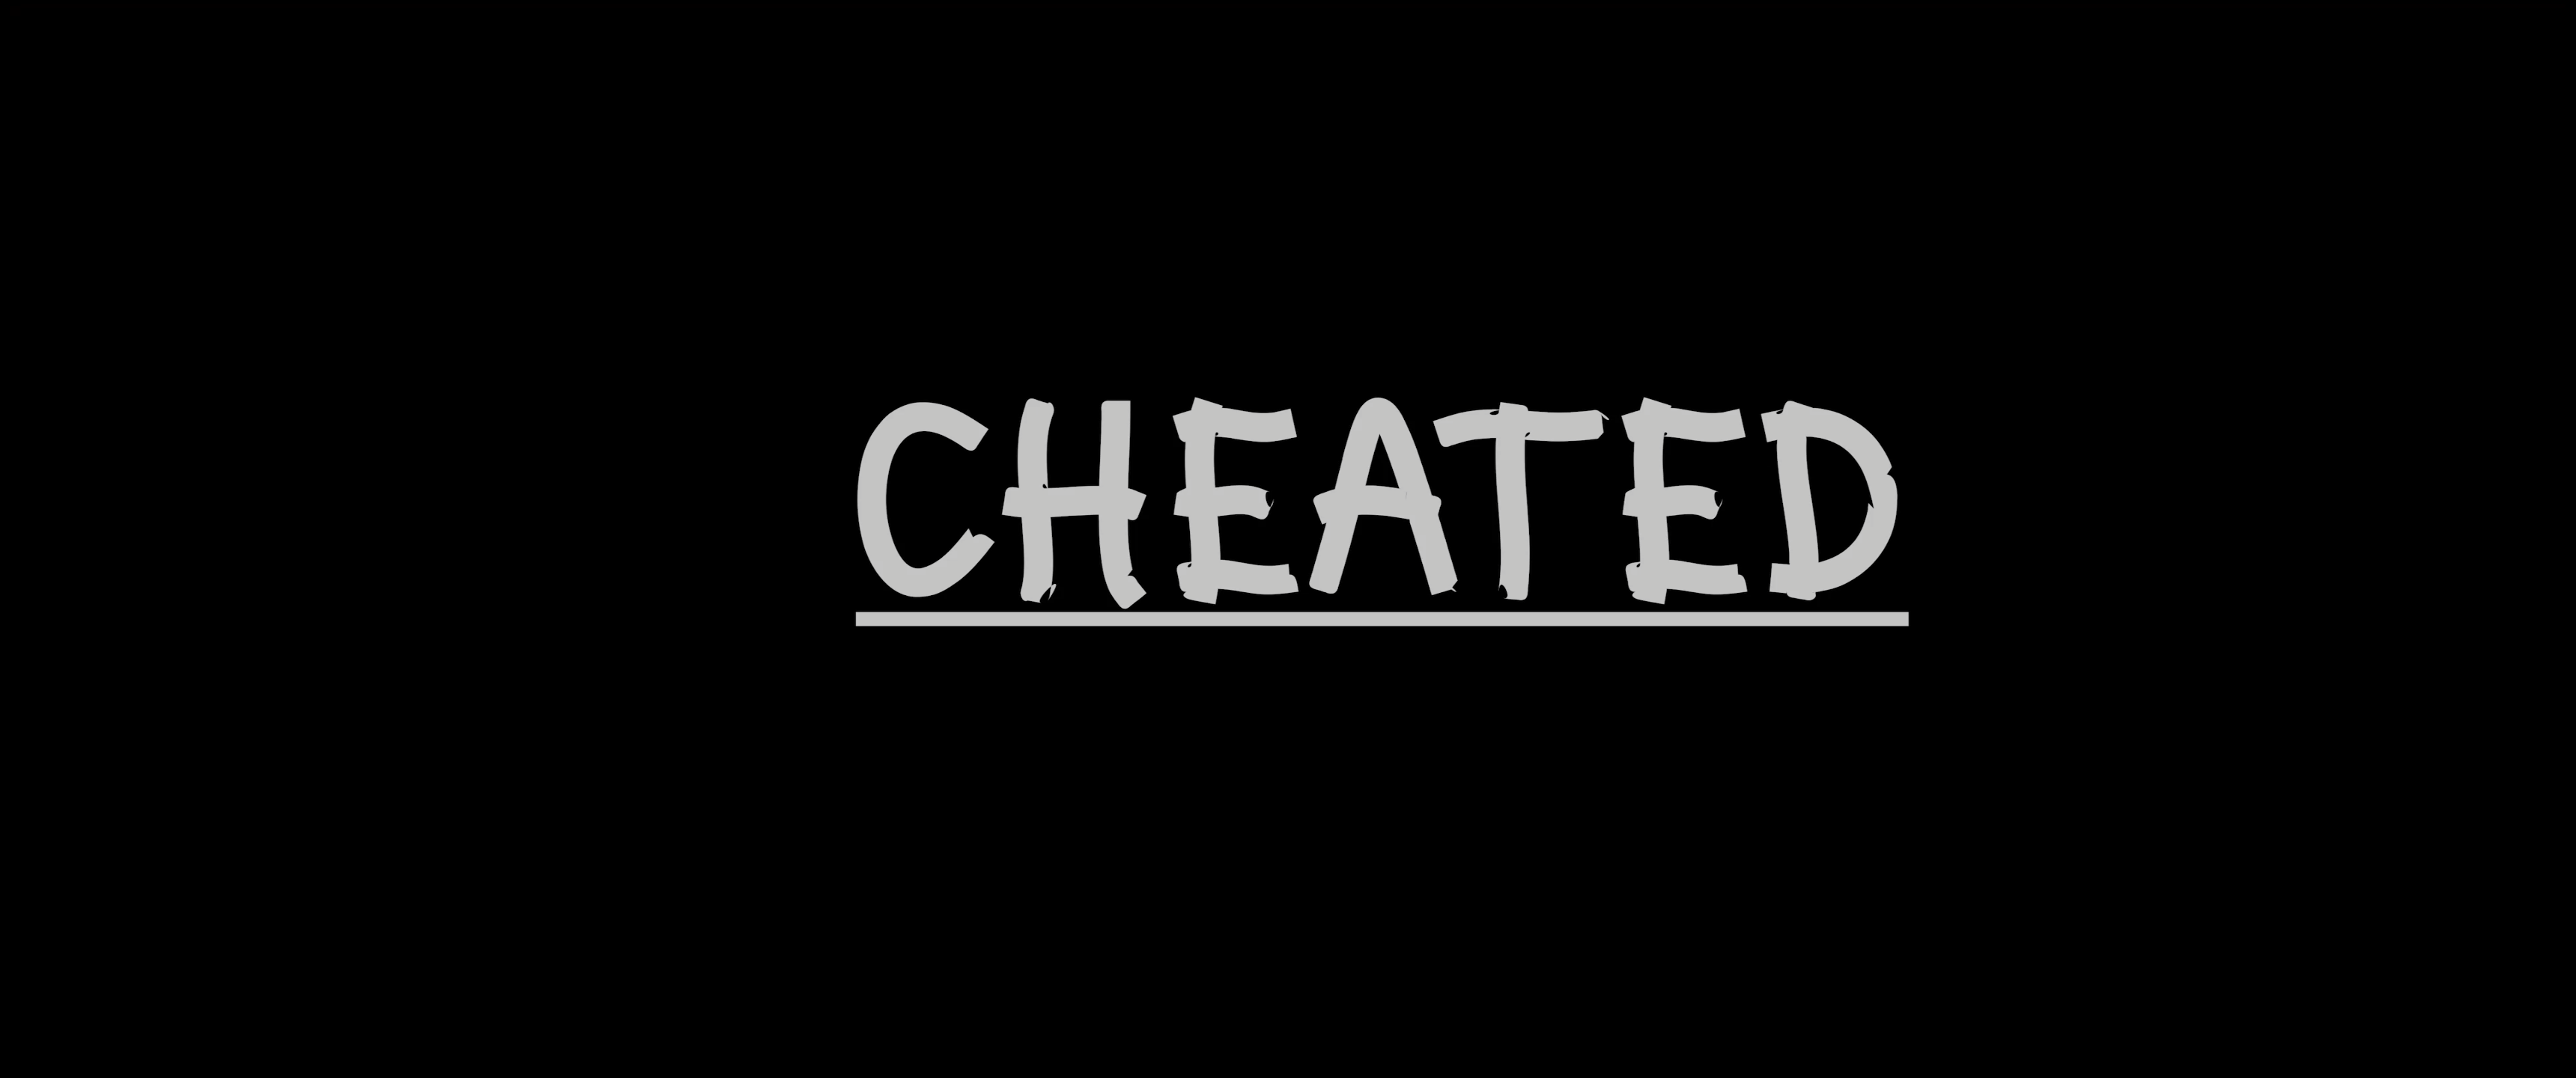 Cheated - My Rode Reel 2020 Entry